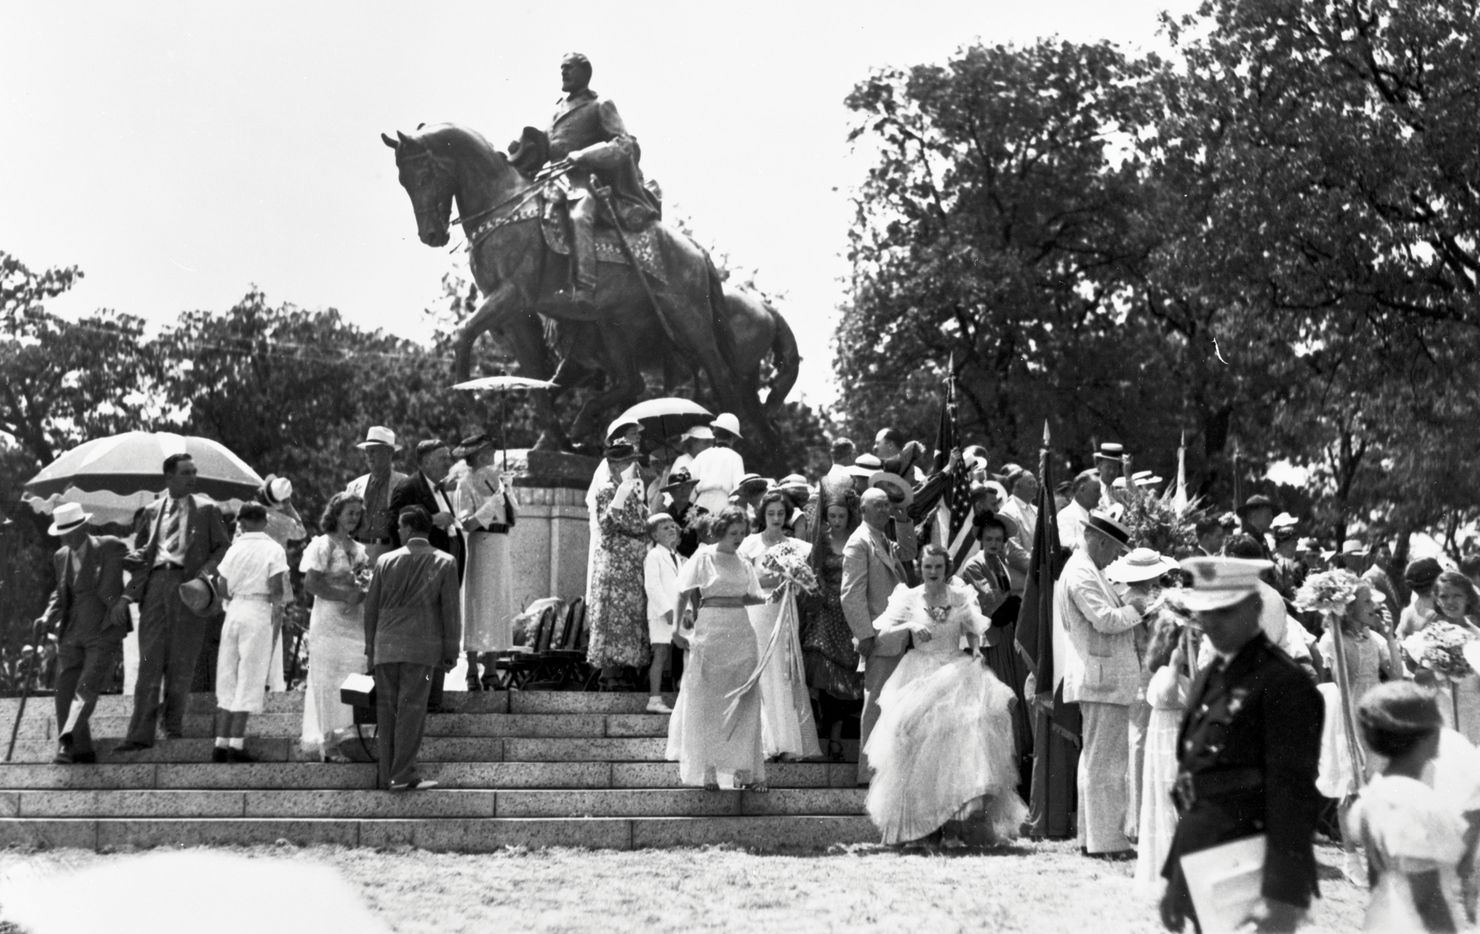 Dressed for a celebratory occasion, members of a crowd mill about the newly unveiled statue of Robert E. Lee after President Franklin D. Roosevelt dedicated it at Lee Park in Dallas, Texas, on June 12, 1936.